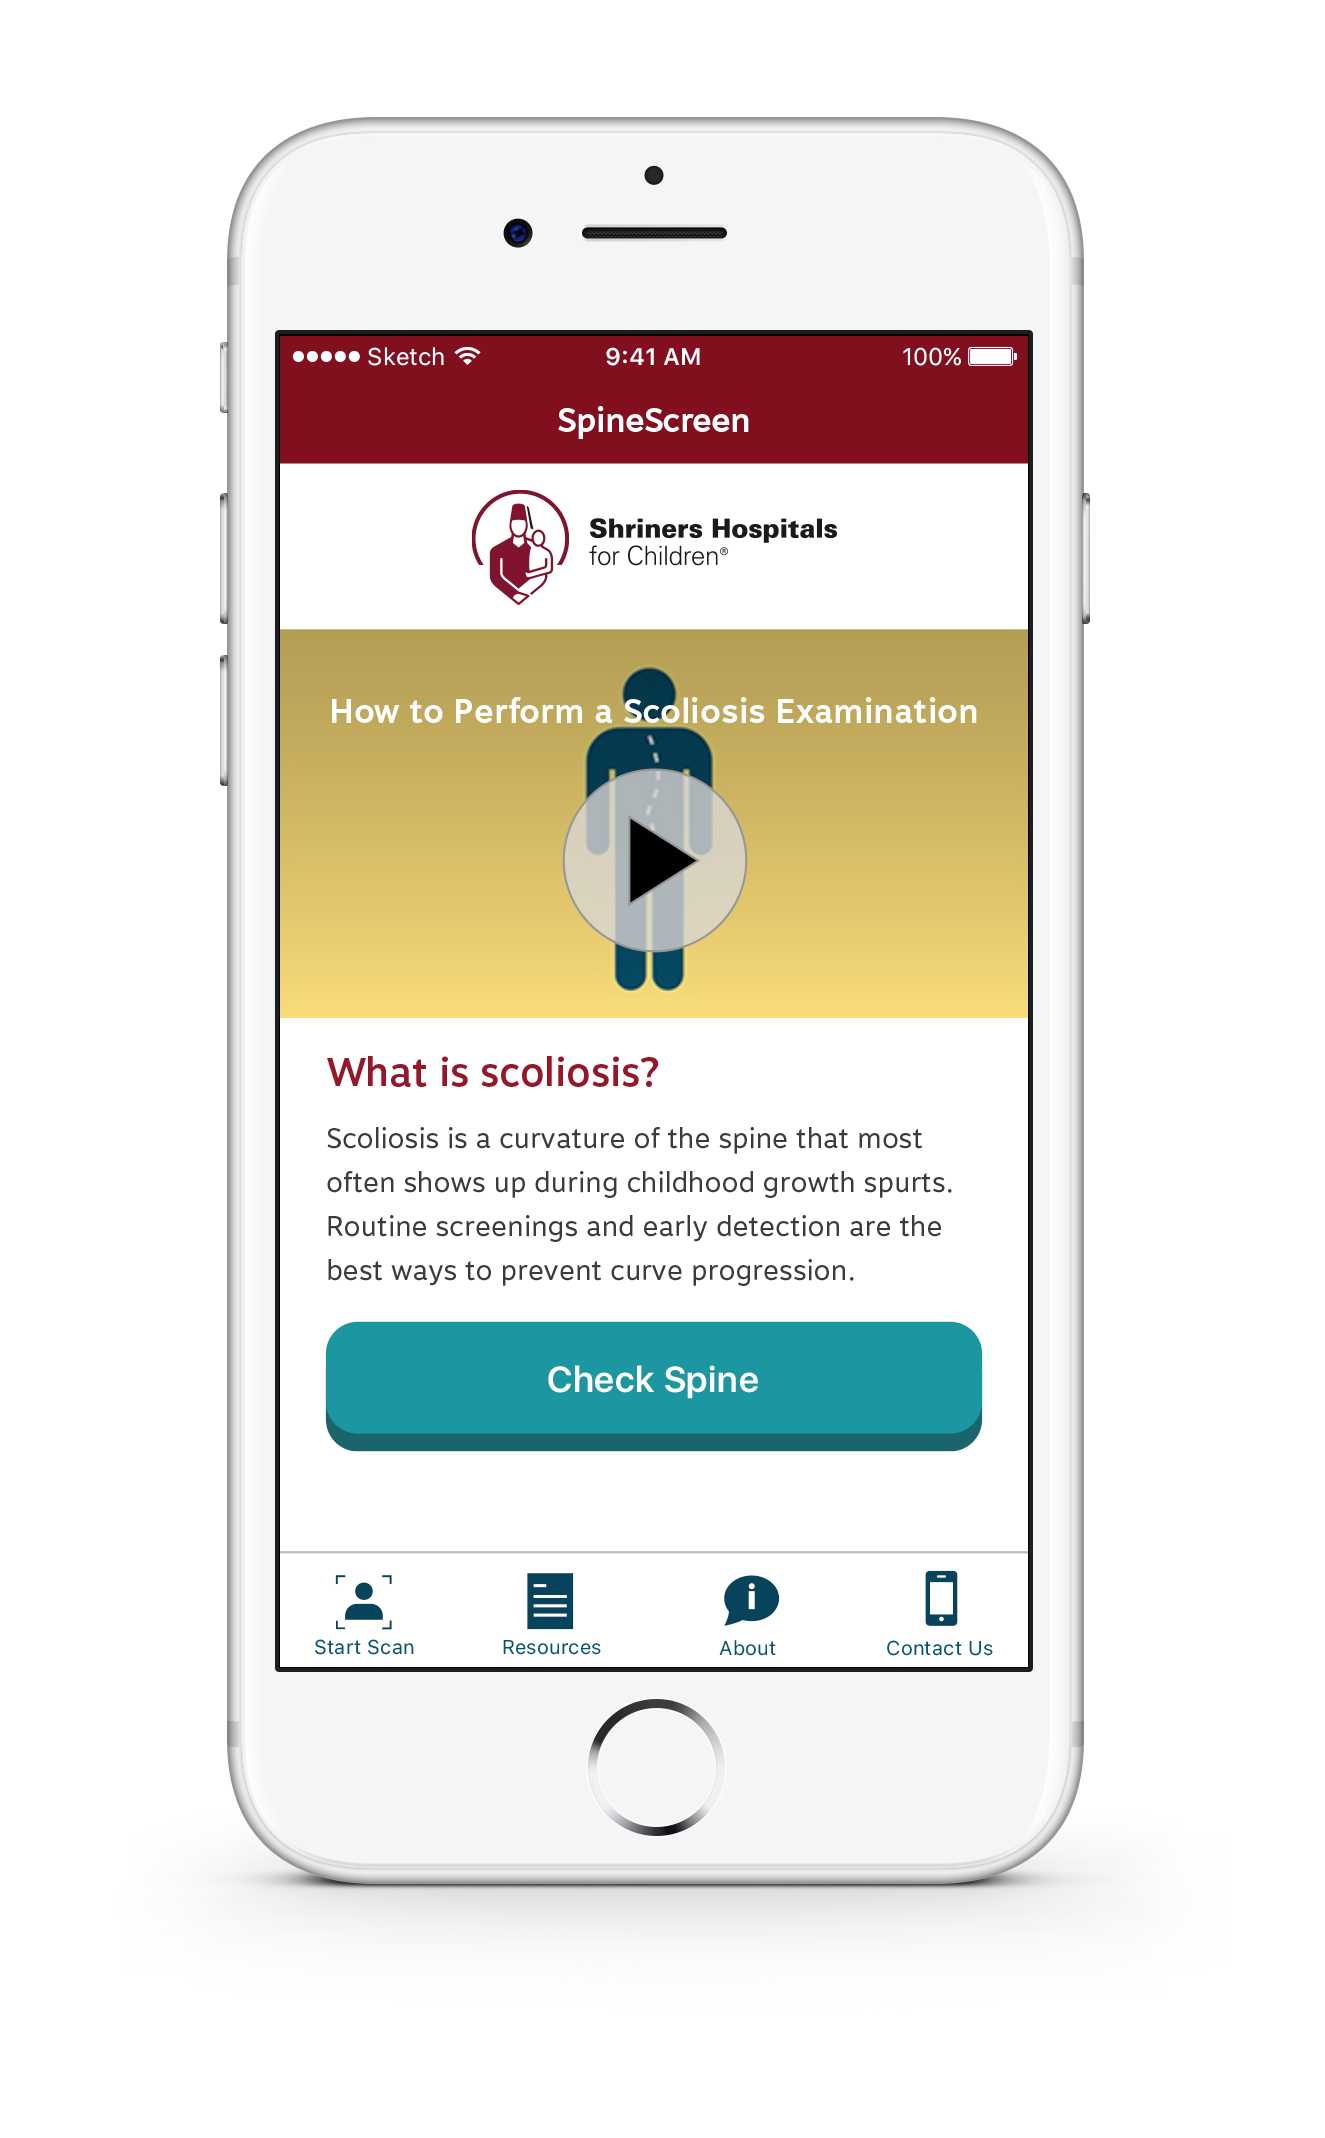 New Important SpineScreen App for Scoliosis Screening from